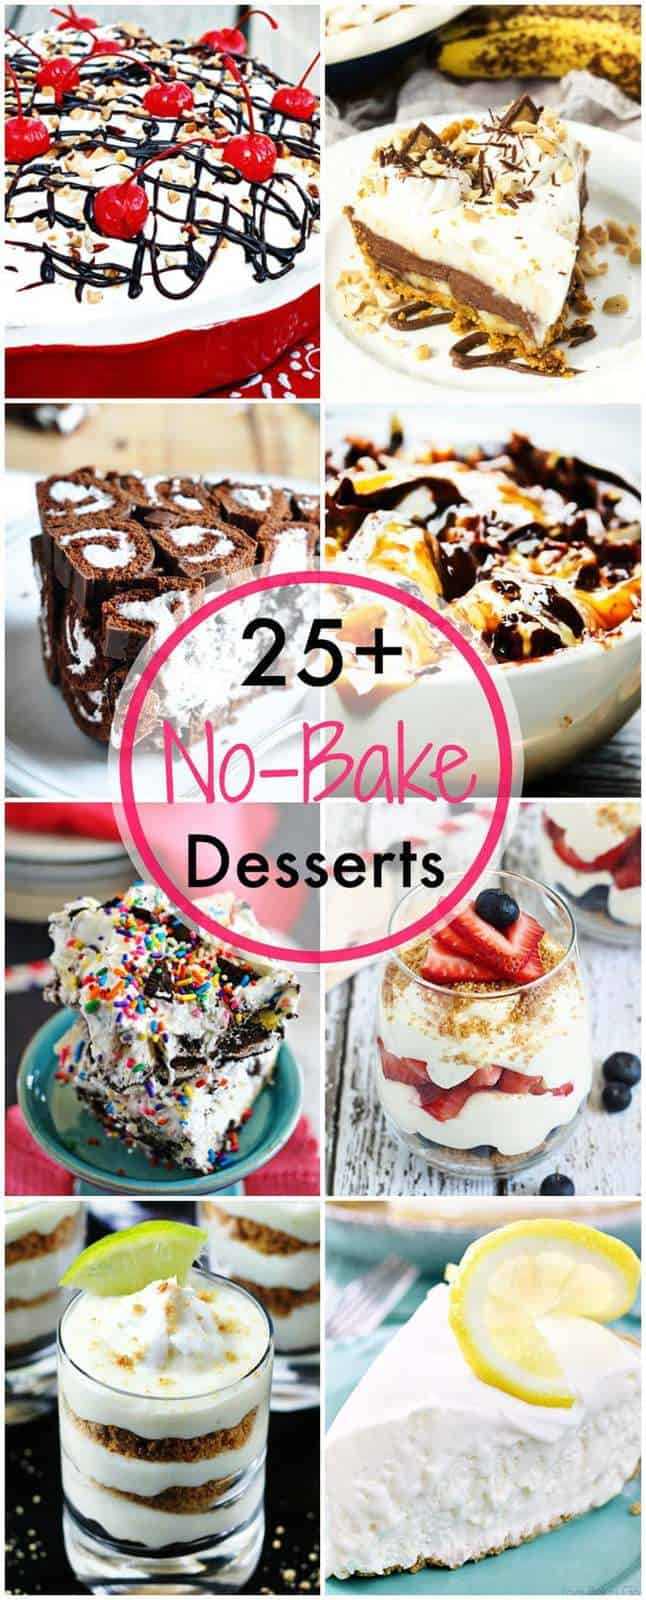 Over 25 of The Best No-Bake Dessert Recipes - pies and parfaits, bars and bites, and more sweet treats that don't need an oven. Perfect for warm summer days! | cupcakesandkalechips.com